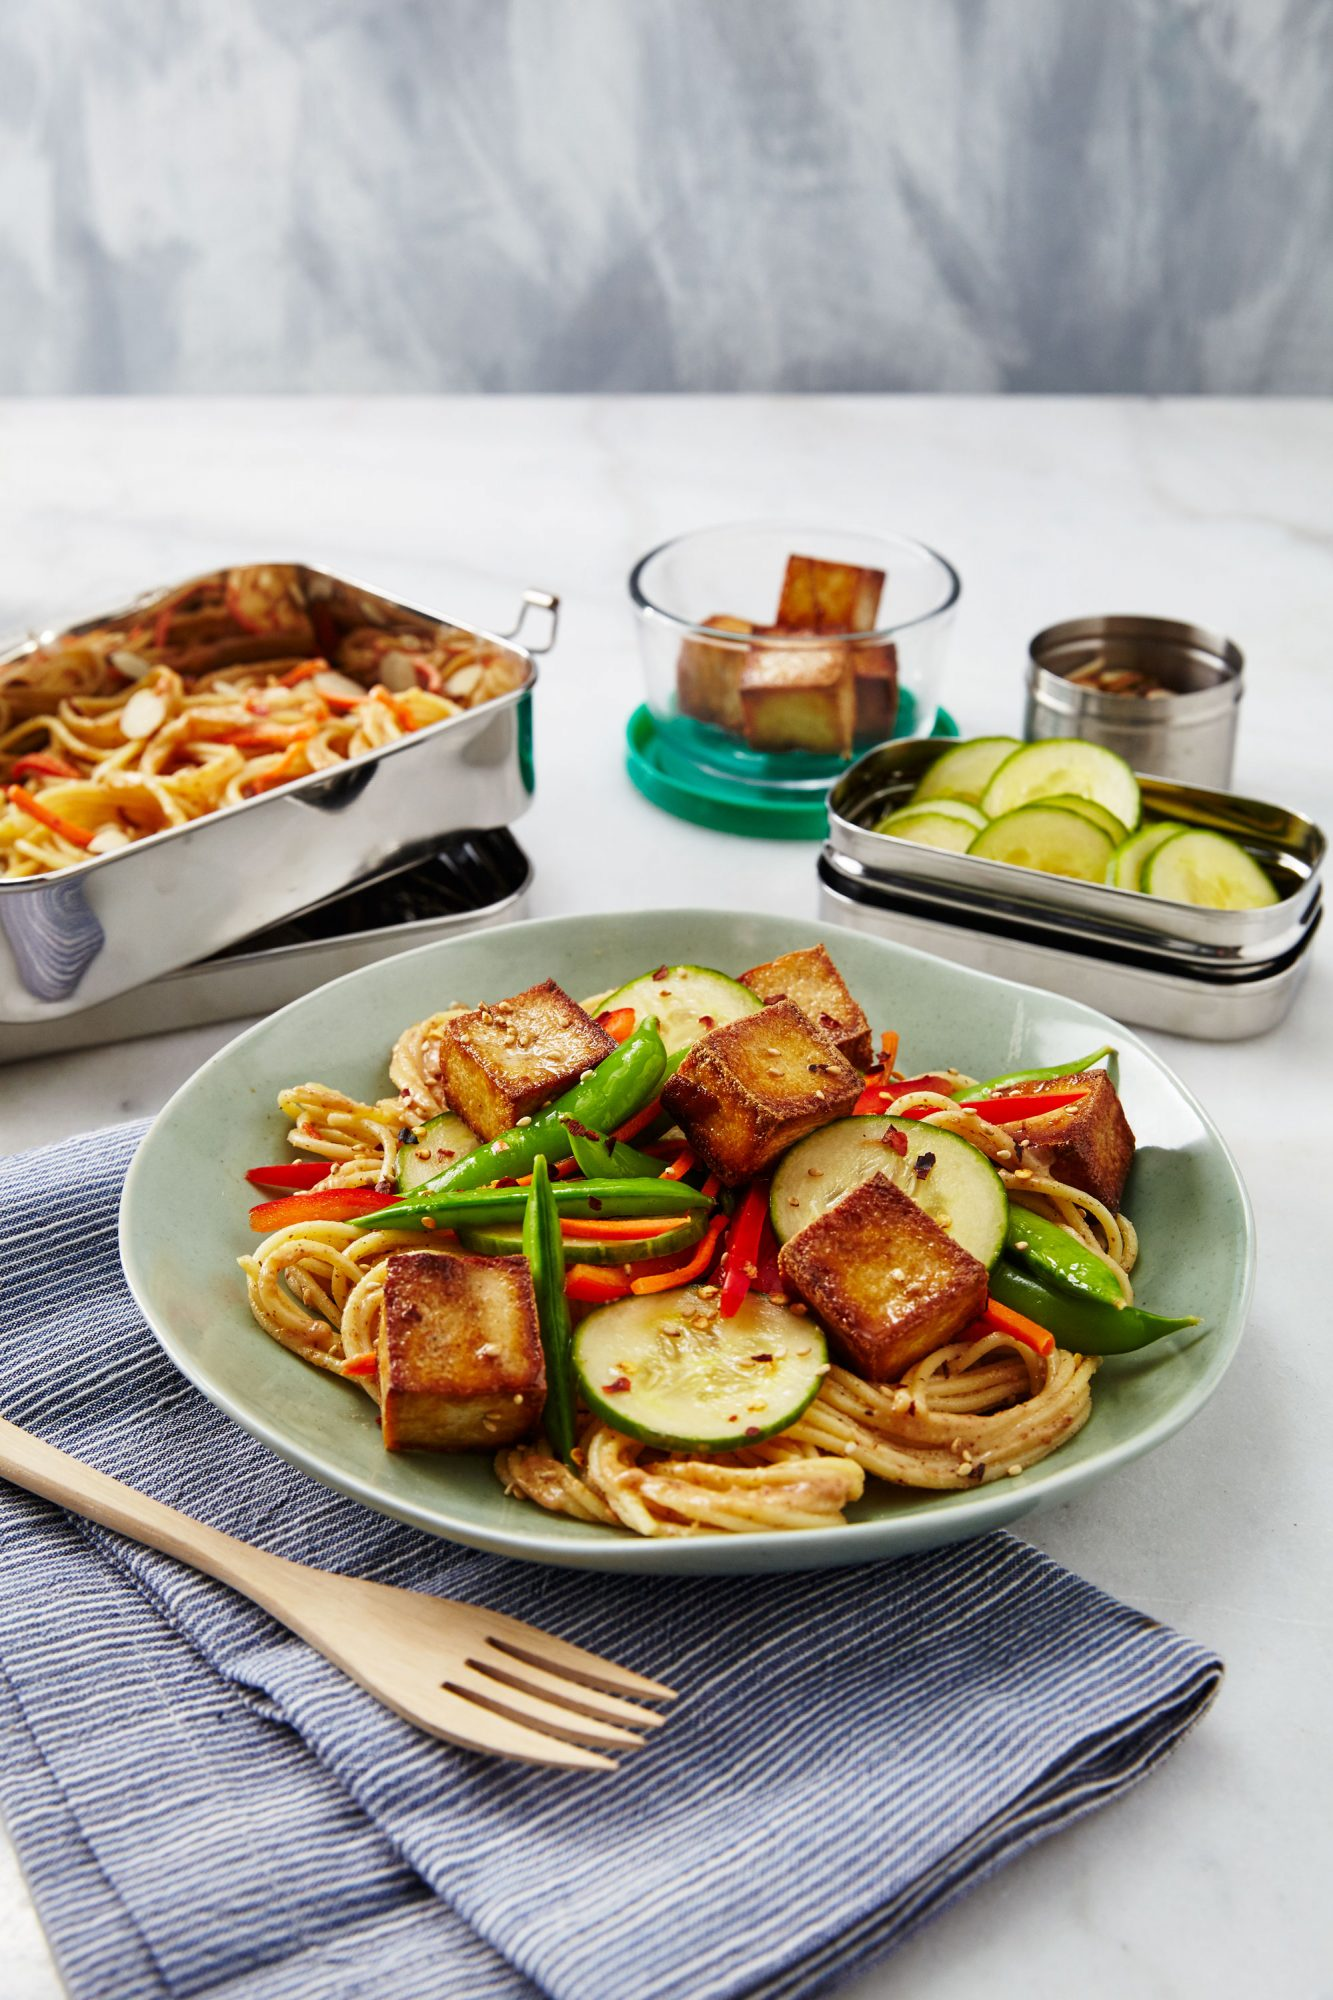 Spicy Asian Noodles with Seared Tofu/Asian Noodle Bento Box image